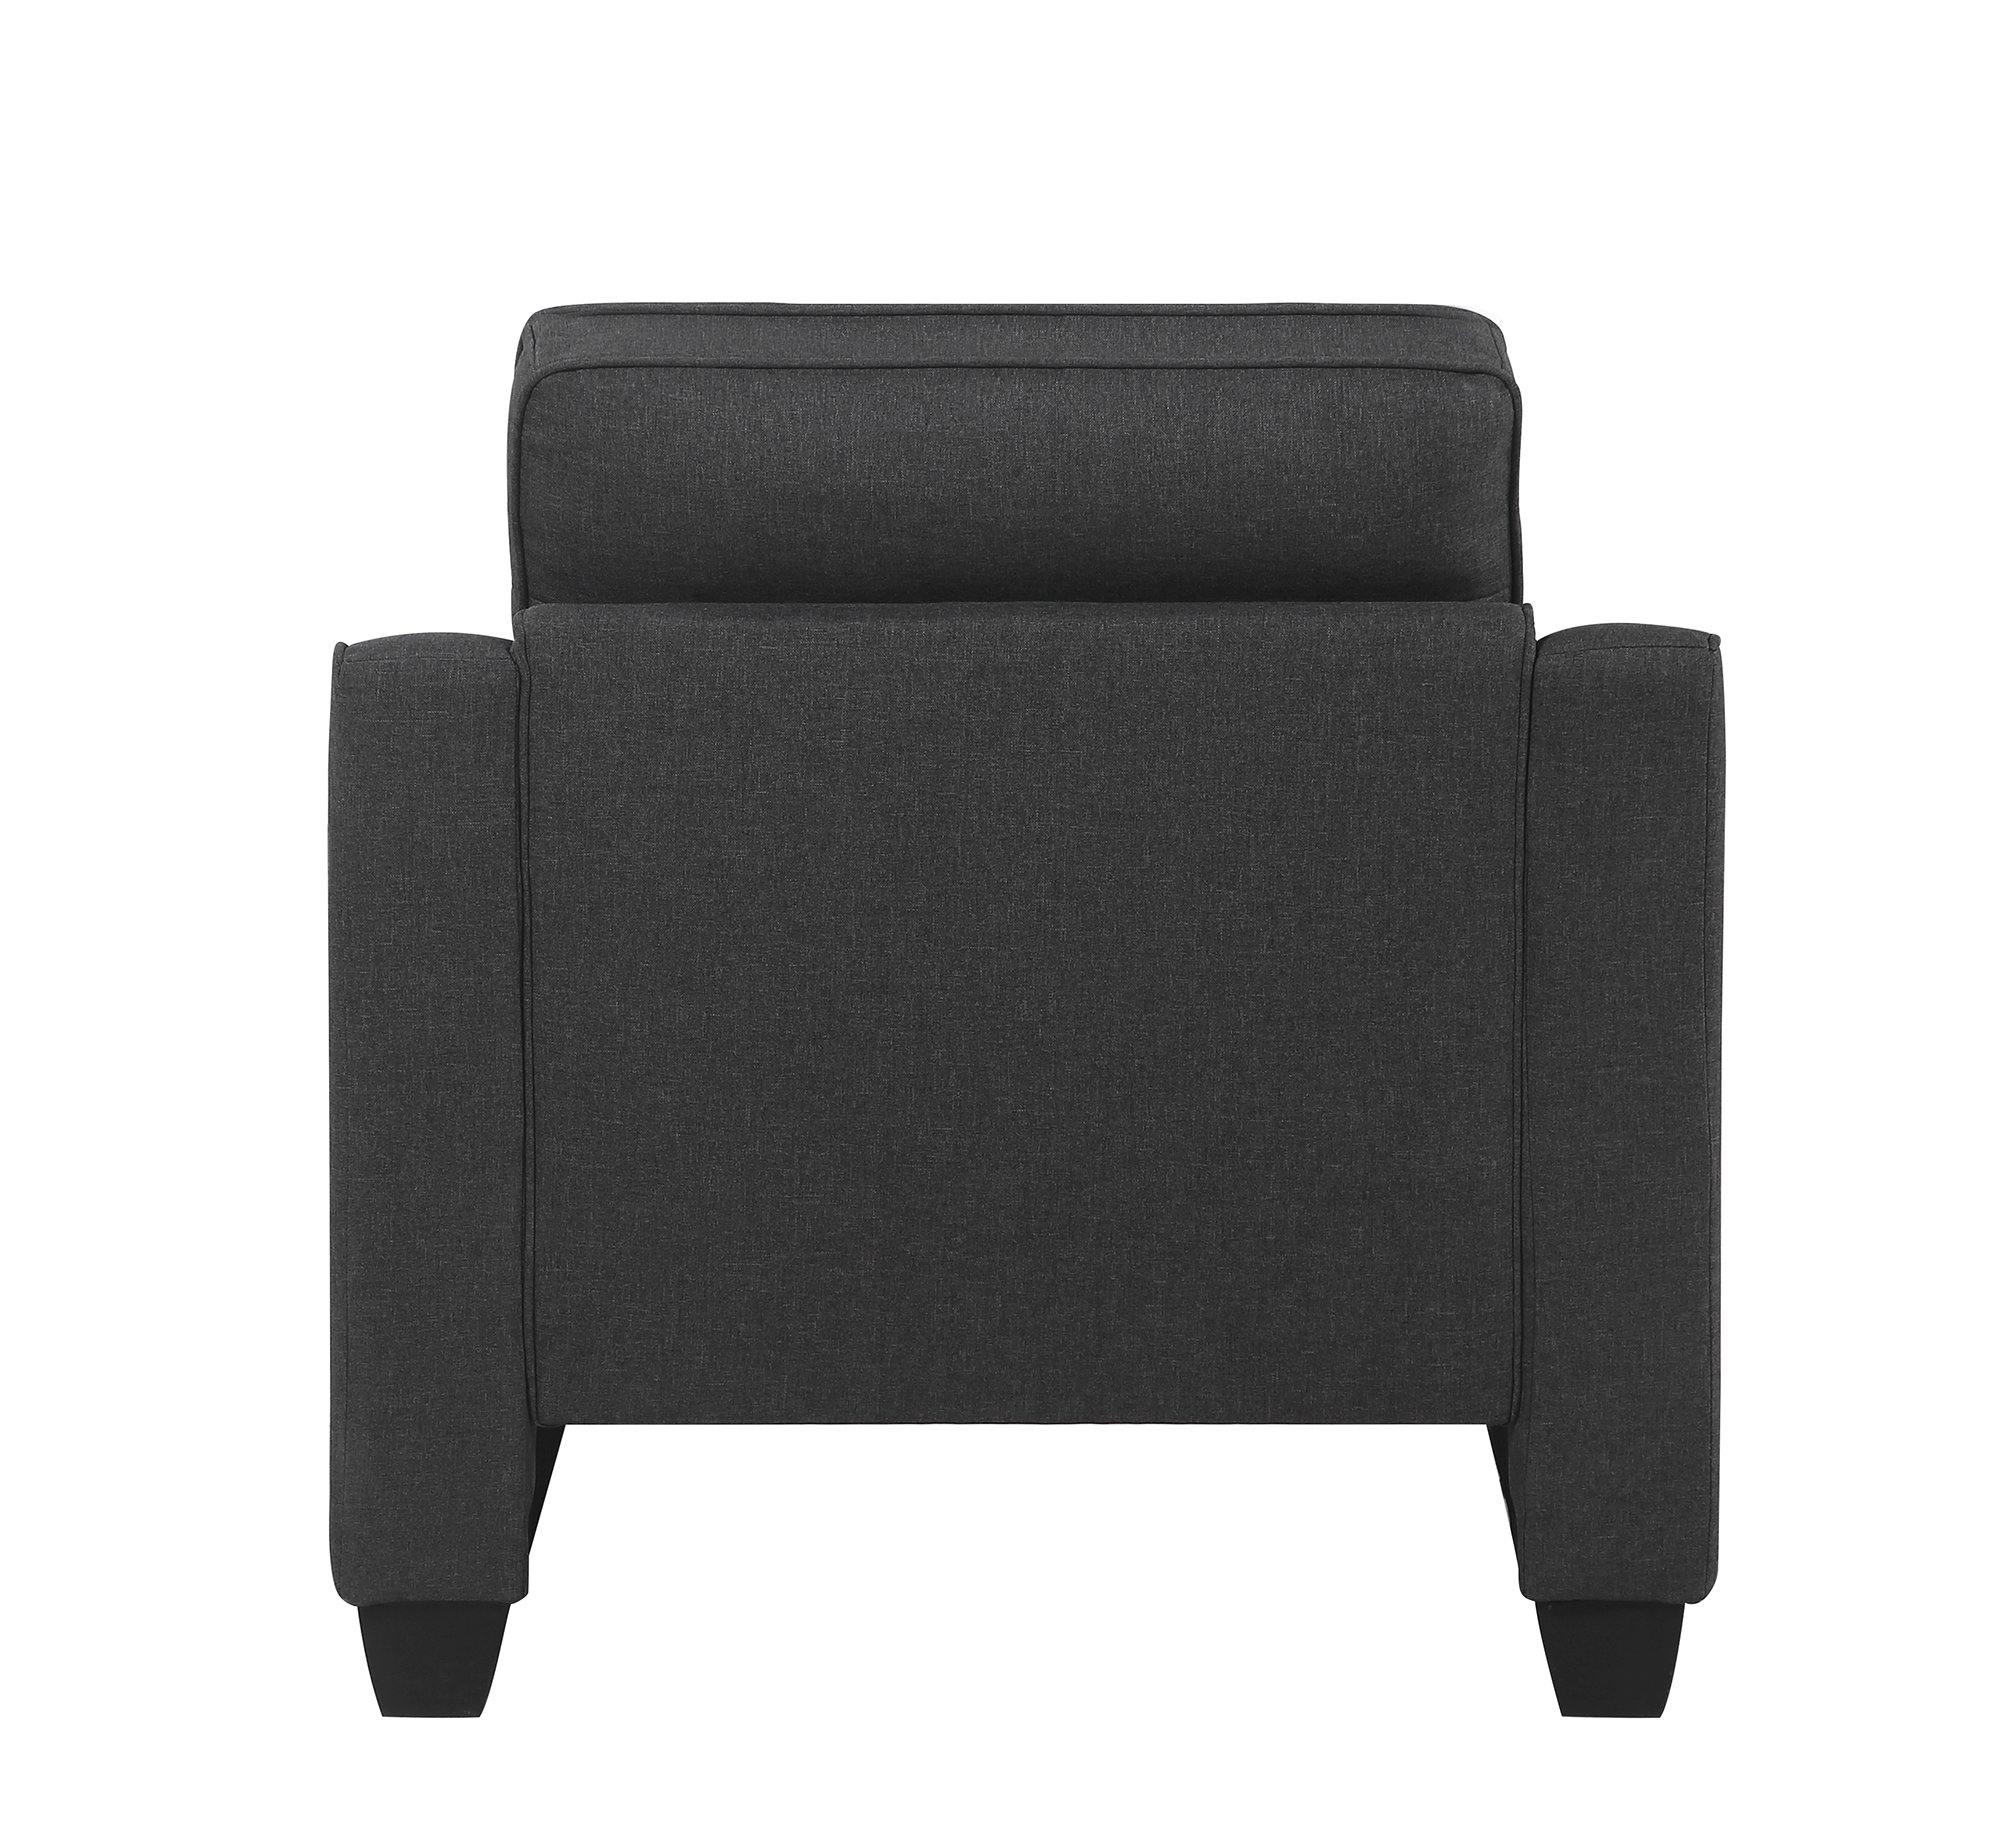 Chair 508322 Sectional1 By coaster - sofafair.com